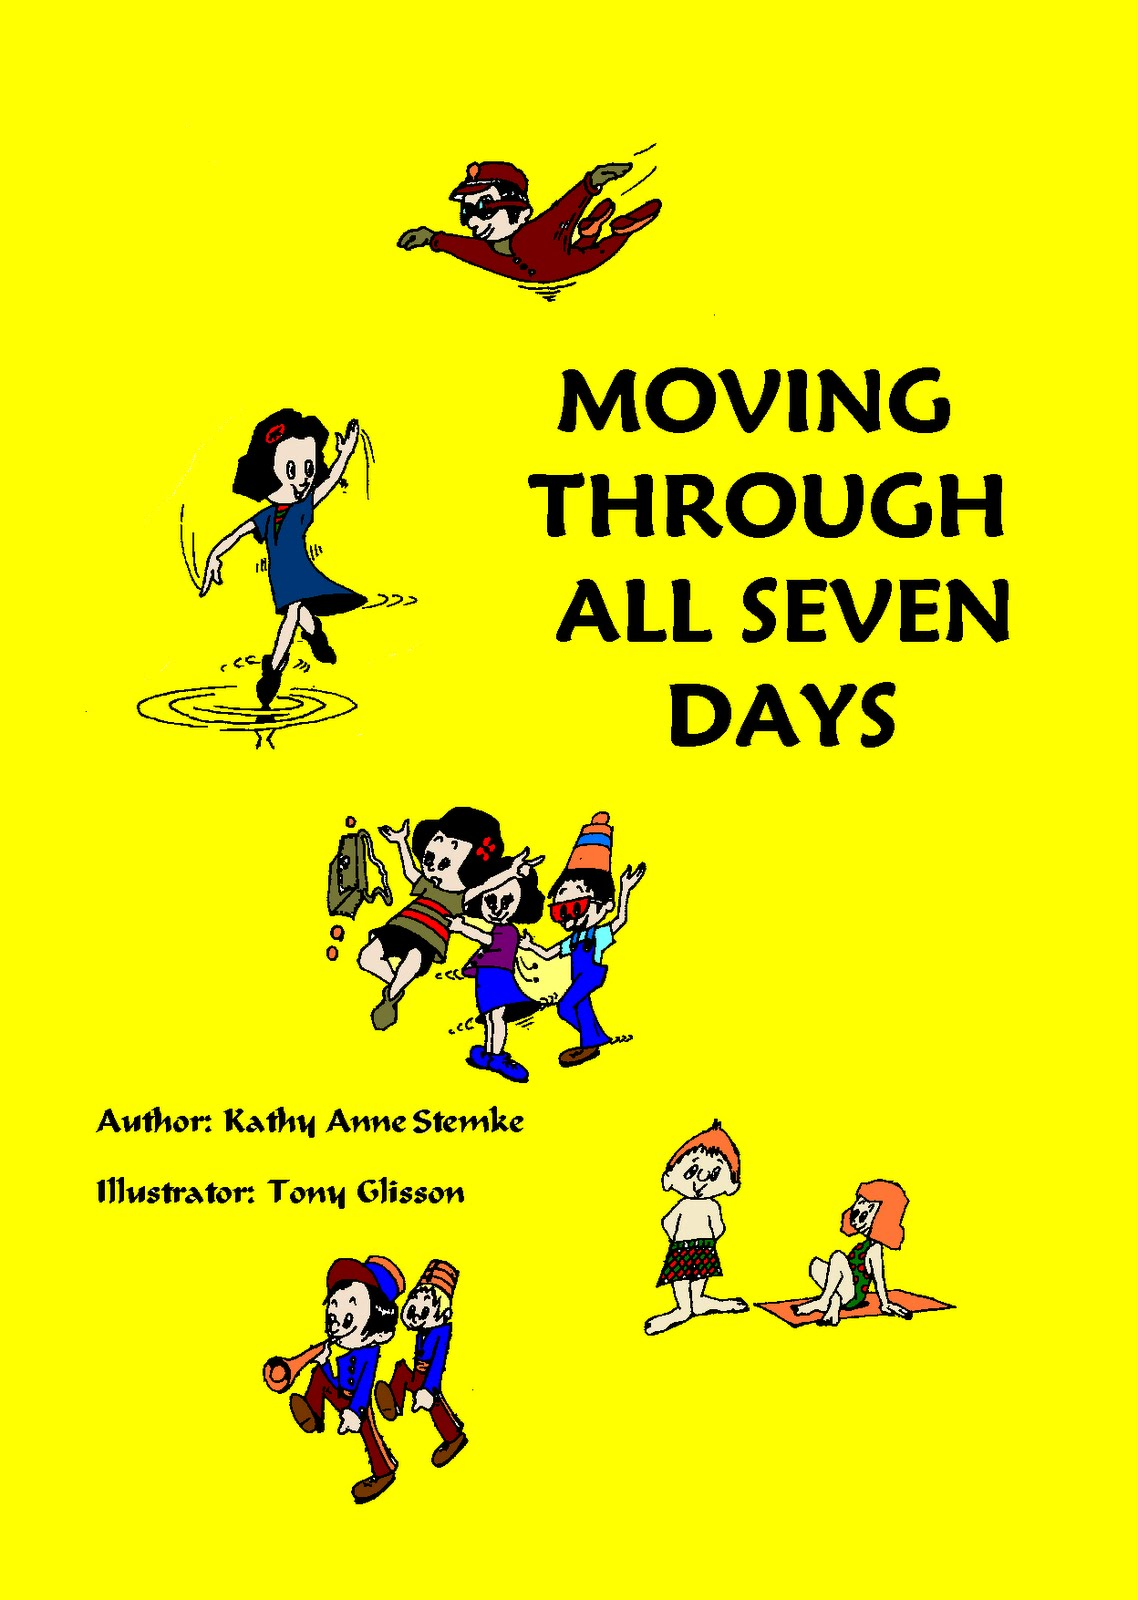 Writers On The Move Kids Learn The Days Of The Week With Moving Through All Seven Days